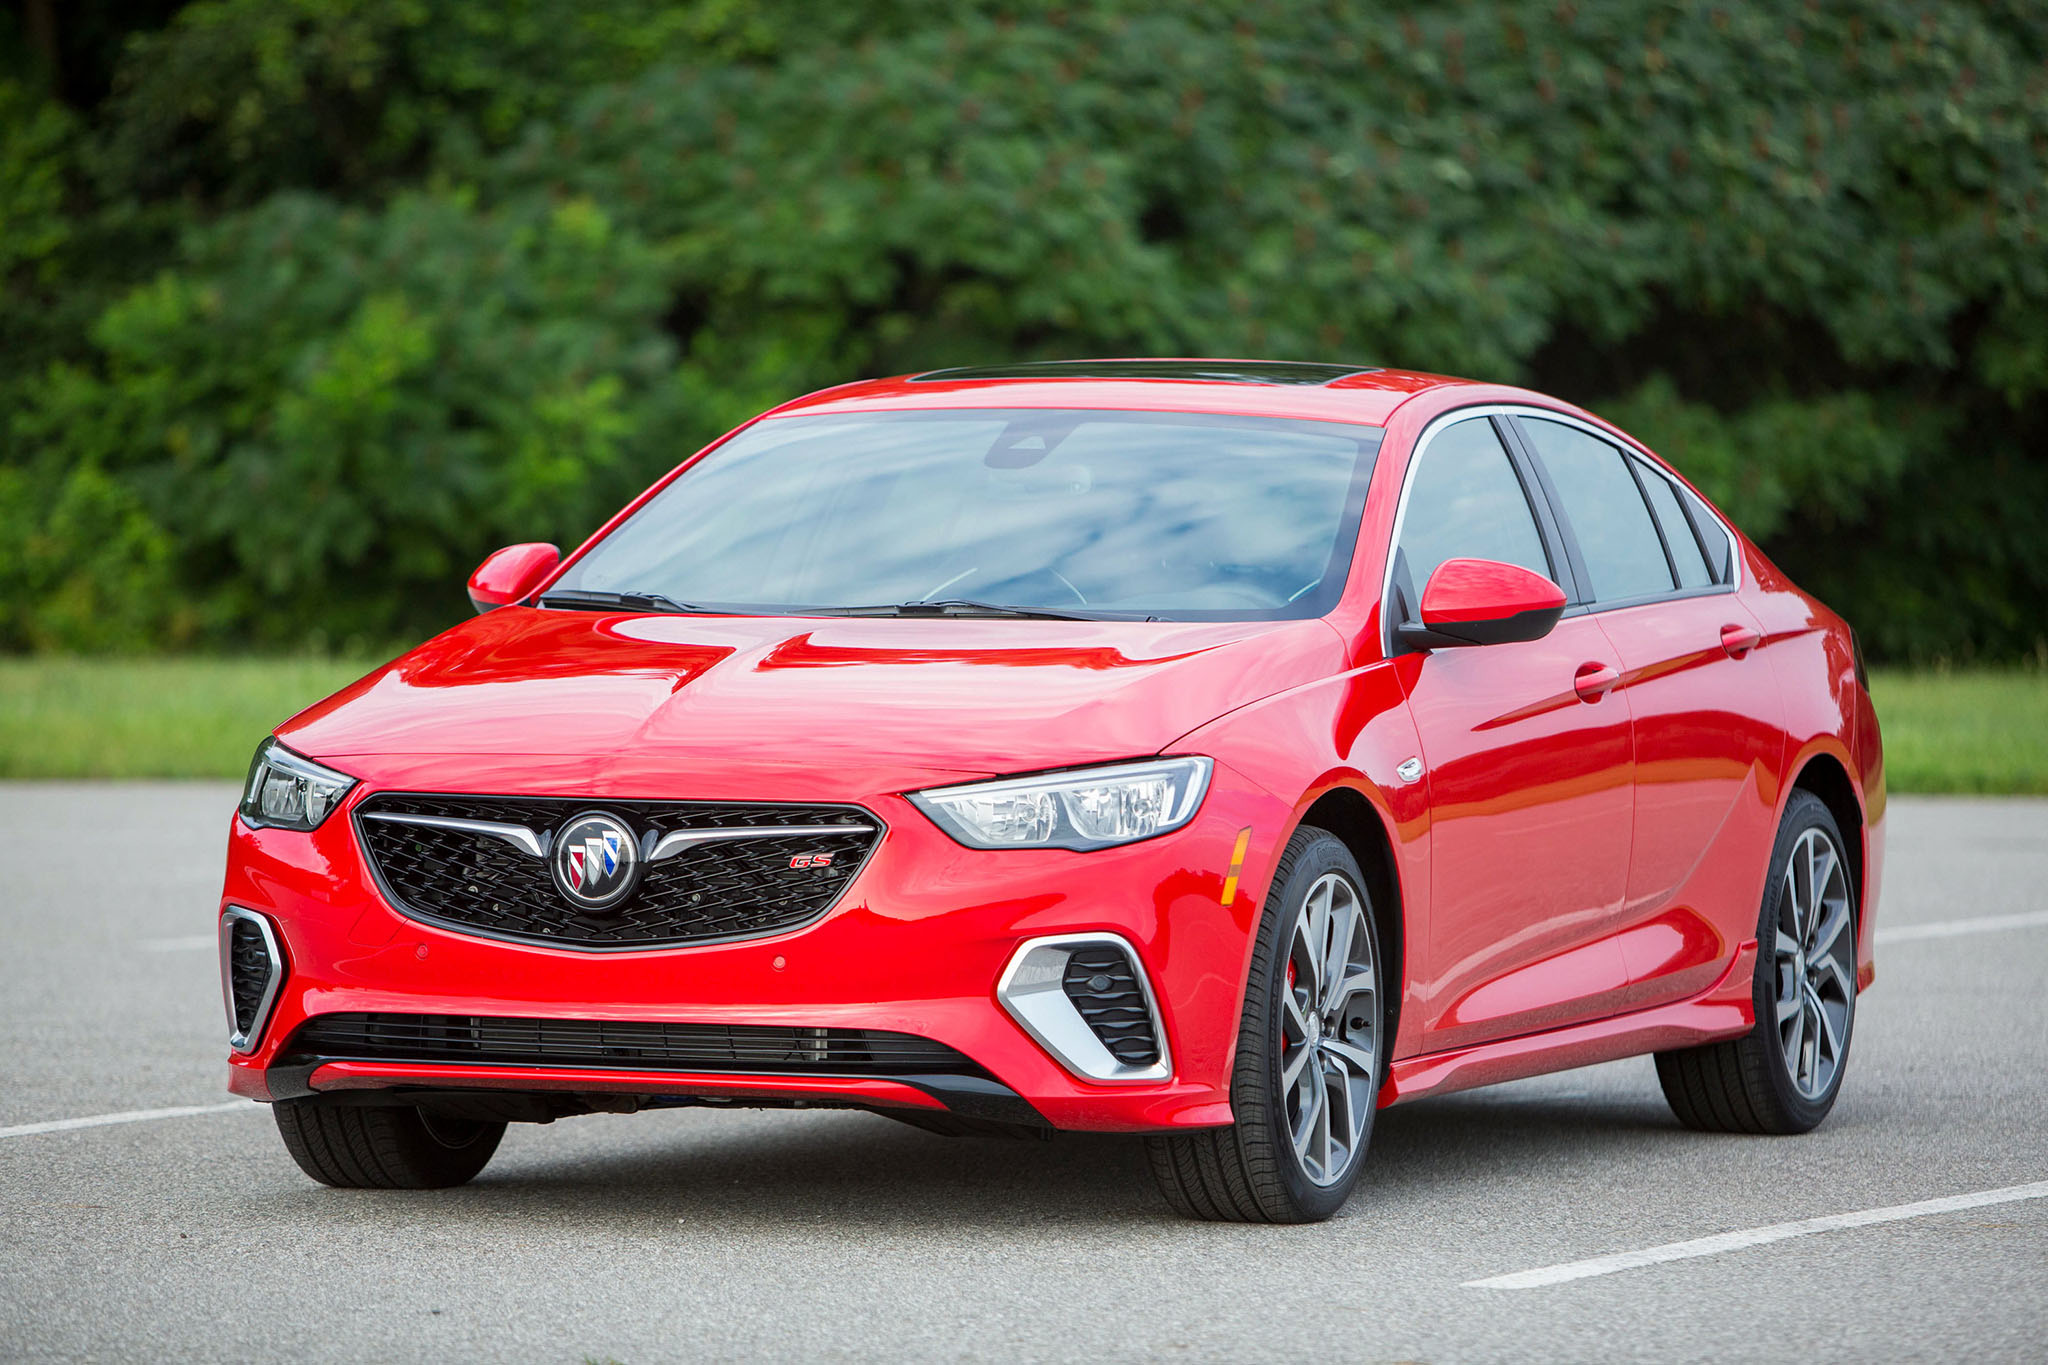 2017 Buick Grand National >> This is the all-new 2018 Buick Regal GS, an enthusiasts' calling with a wagon on the way ...